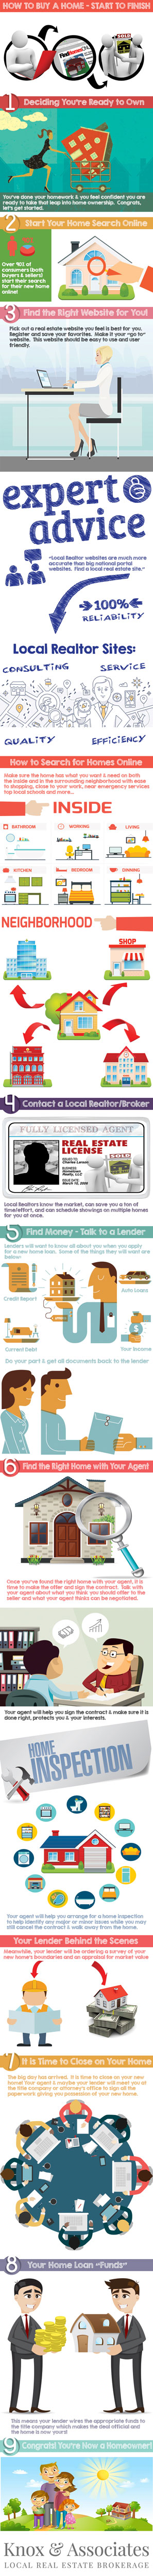 infographic-how-to-buy-a-home-2.jpg